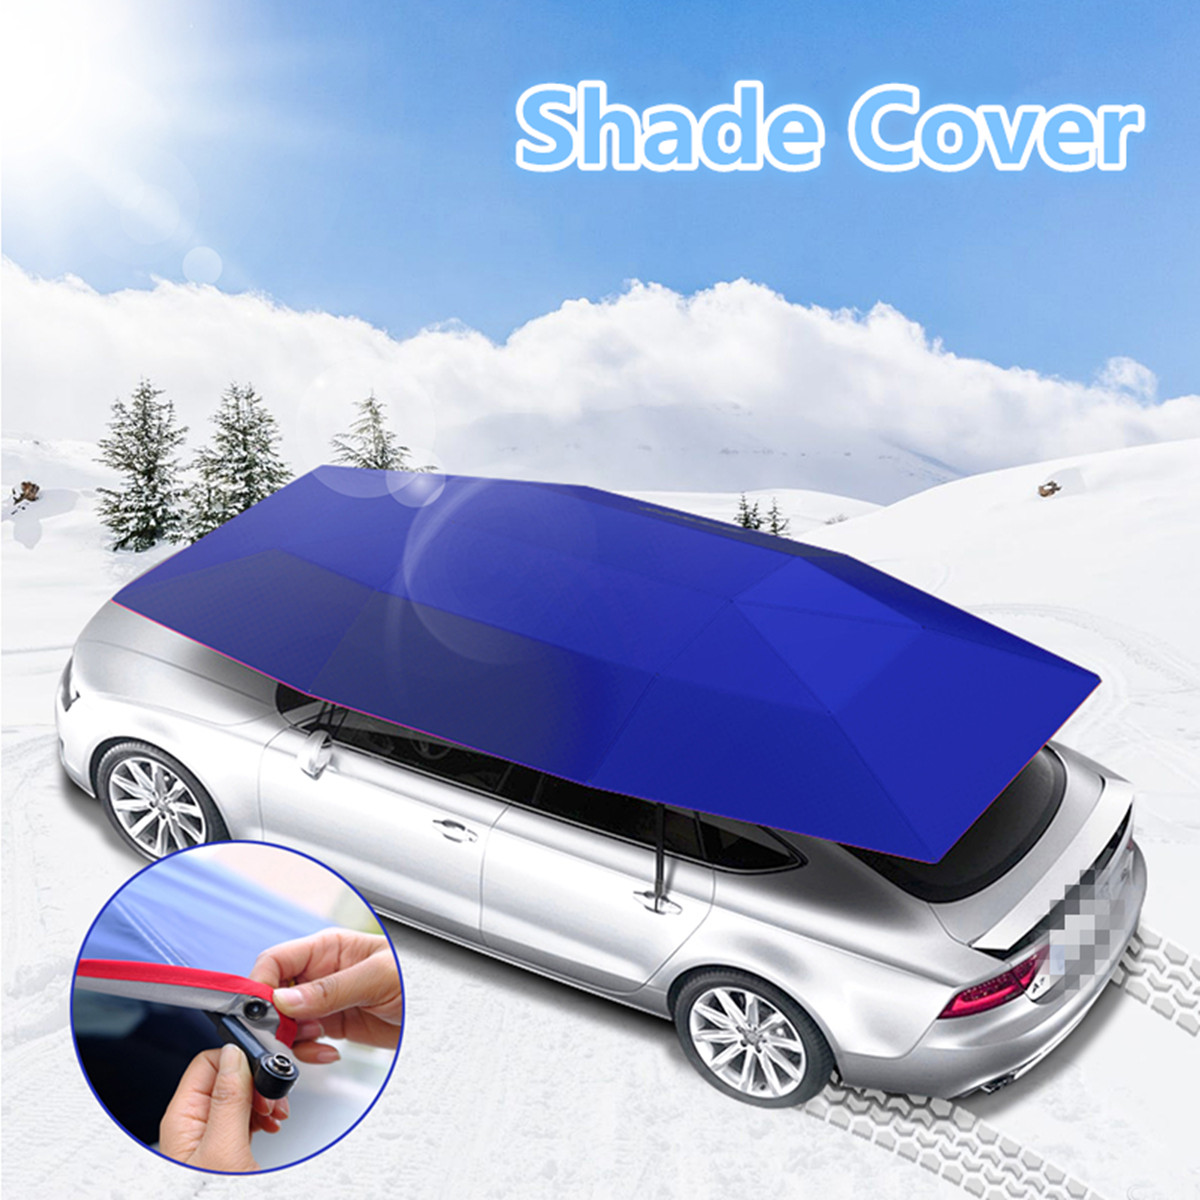 Car Umbrella Sun Shade Cover Outdoor Car Vehicle Tent Oxford Cloth Polyester Covers 400x210cm Blue/Silver Without bracketCar Umbrella Sun Shade Cover Outdoor Car Vehicle Tent Oxford Cloth Polyester Covers 400x210cm Blue/Silver Without bracket